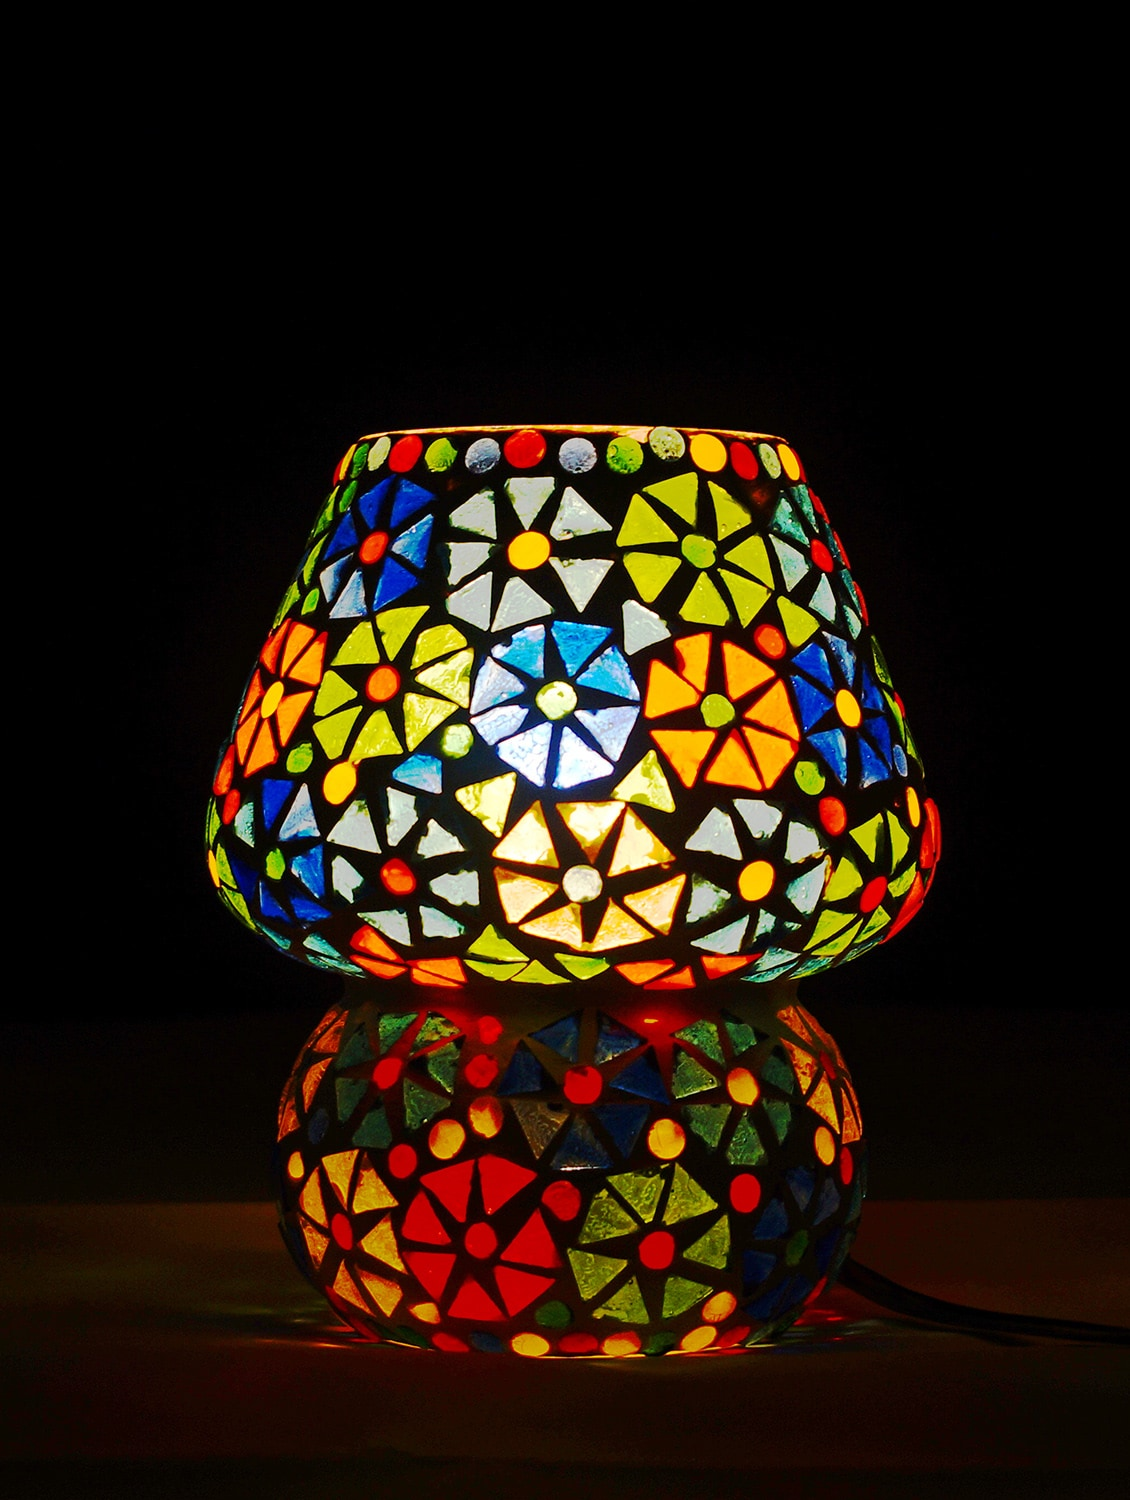 Stupendous Multicolour Mosaic Glass Table Lamp With Shades For Living Room Interior Design Ideas Clesiryabchikinfo